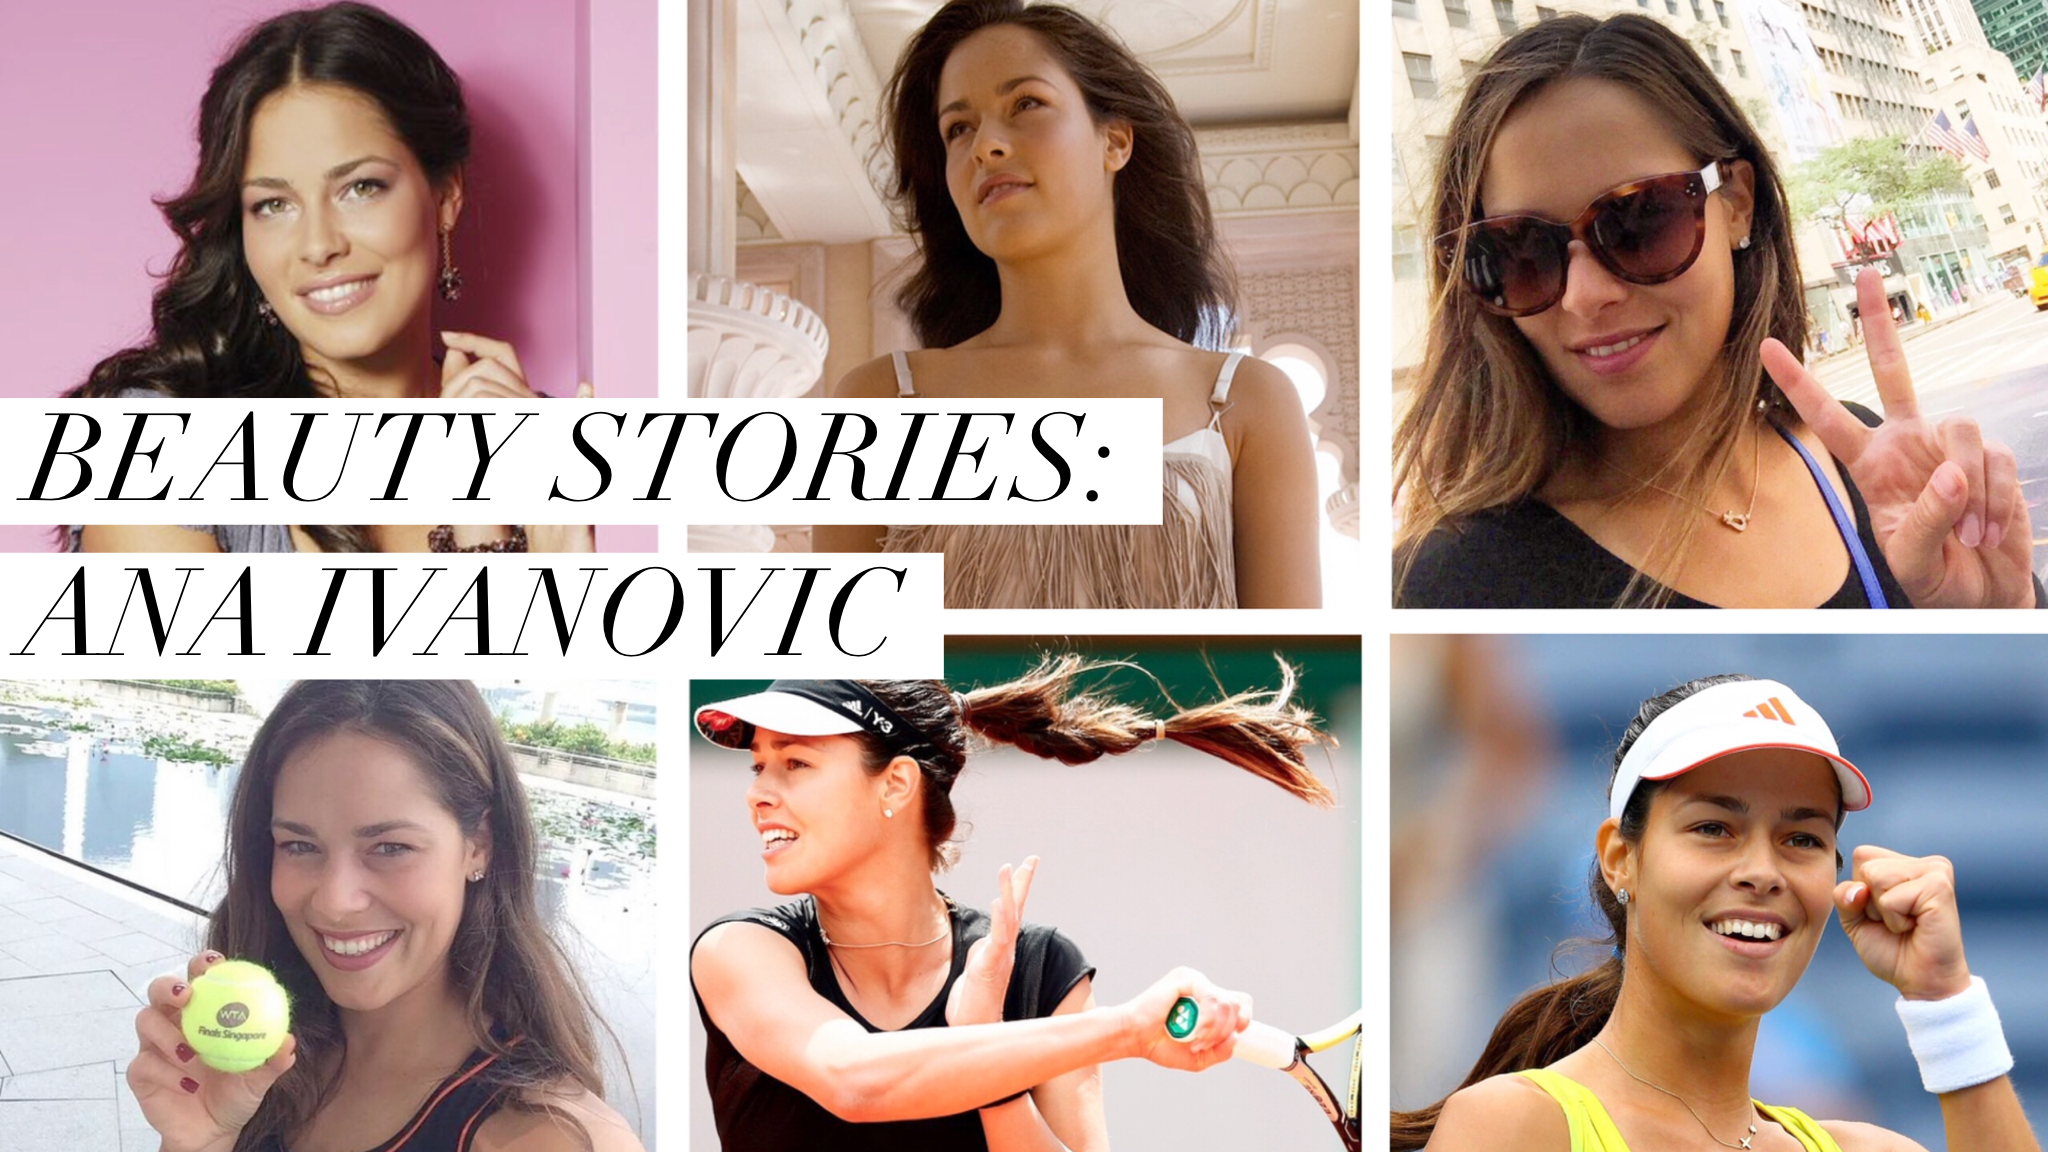 Ana Ivanovic Breasts ana ivanovic: 'i just want to be a girl who plays tennis'